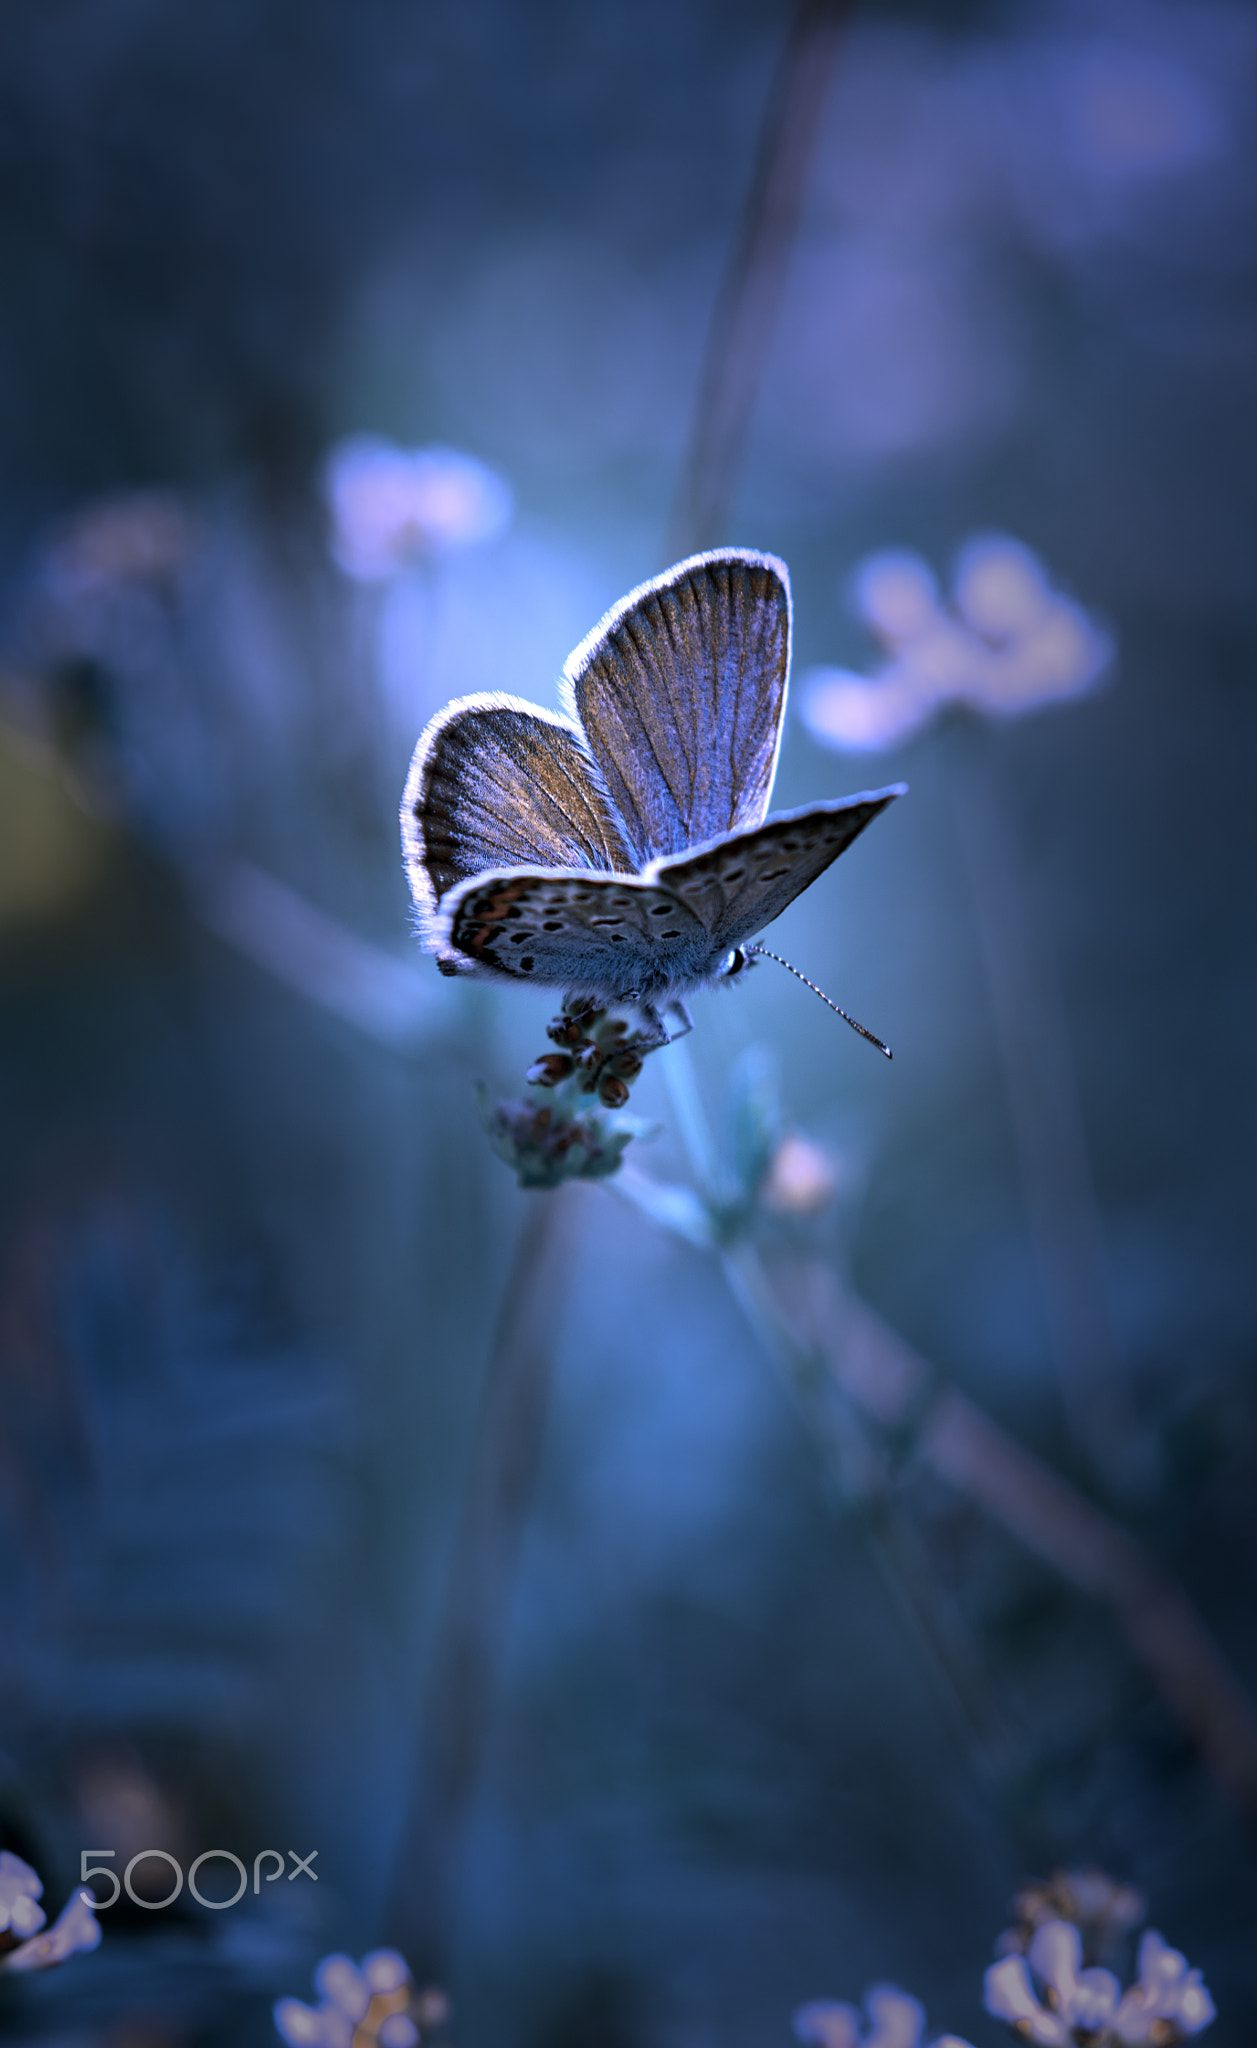 Butterfly Nature Impression Beautiful Nature Pictures